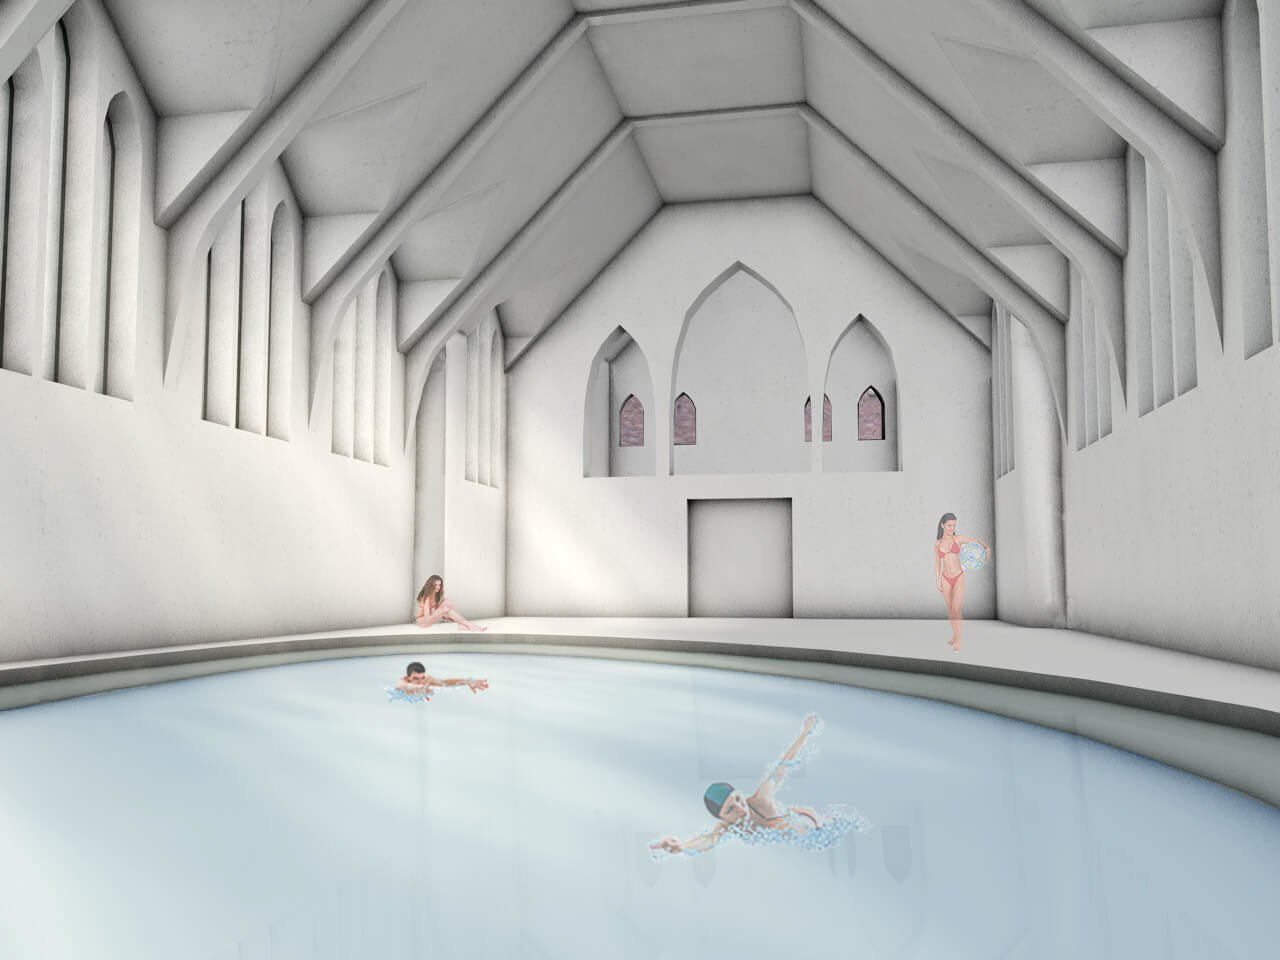 Liong Lie architects Castle Gemert interior chapel with swimming pool